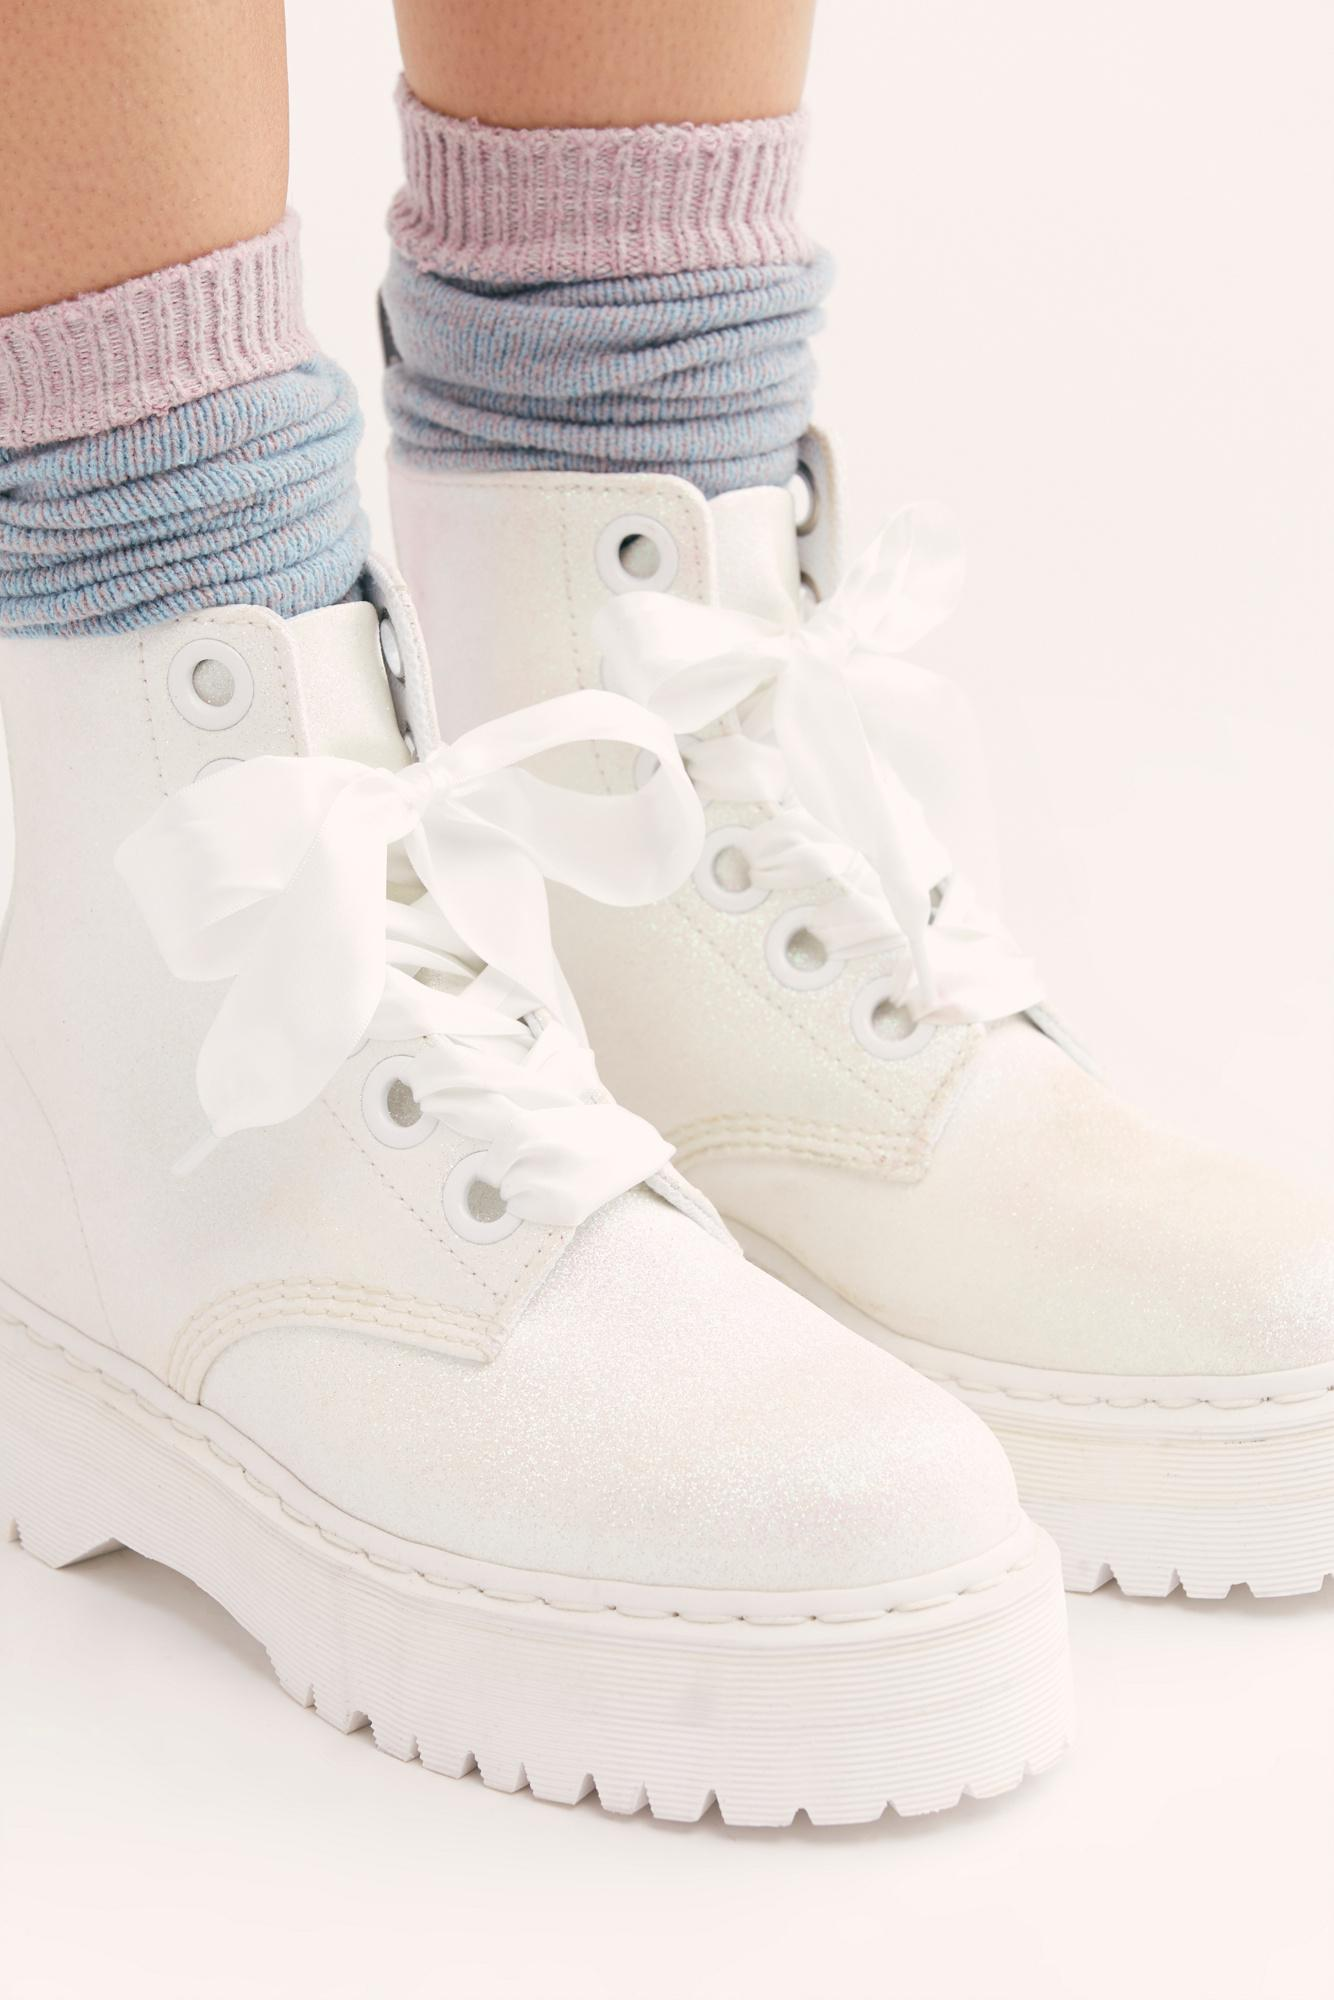 739f30388d5 Free People Dr. Martens Molly Glitter 6 Eye Boot in White - Lyst